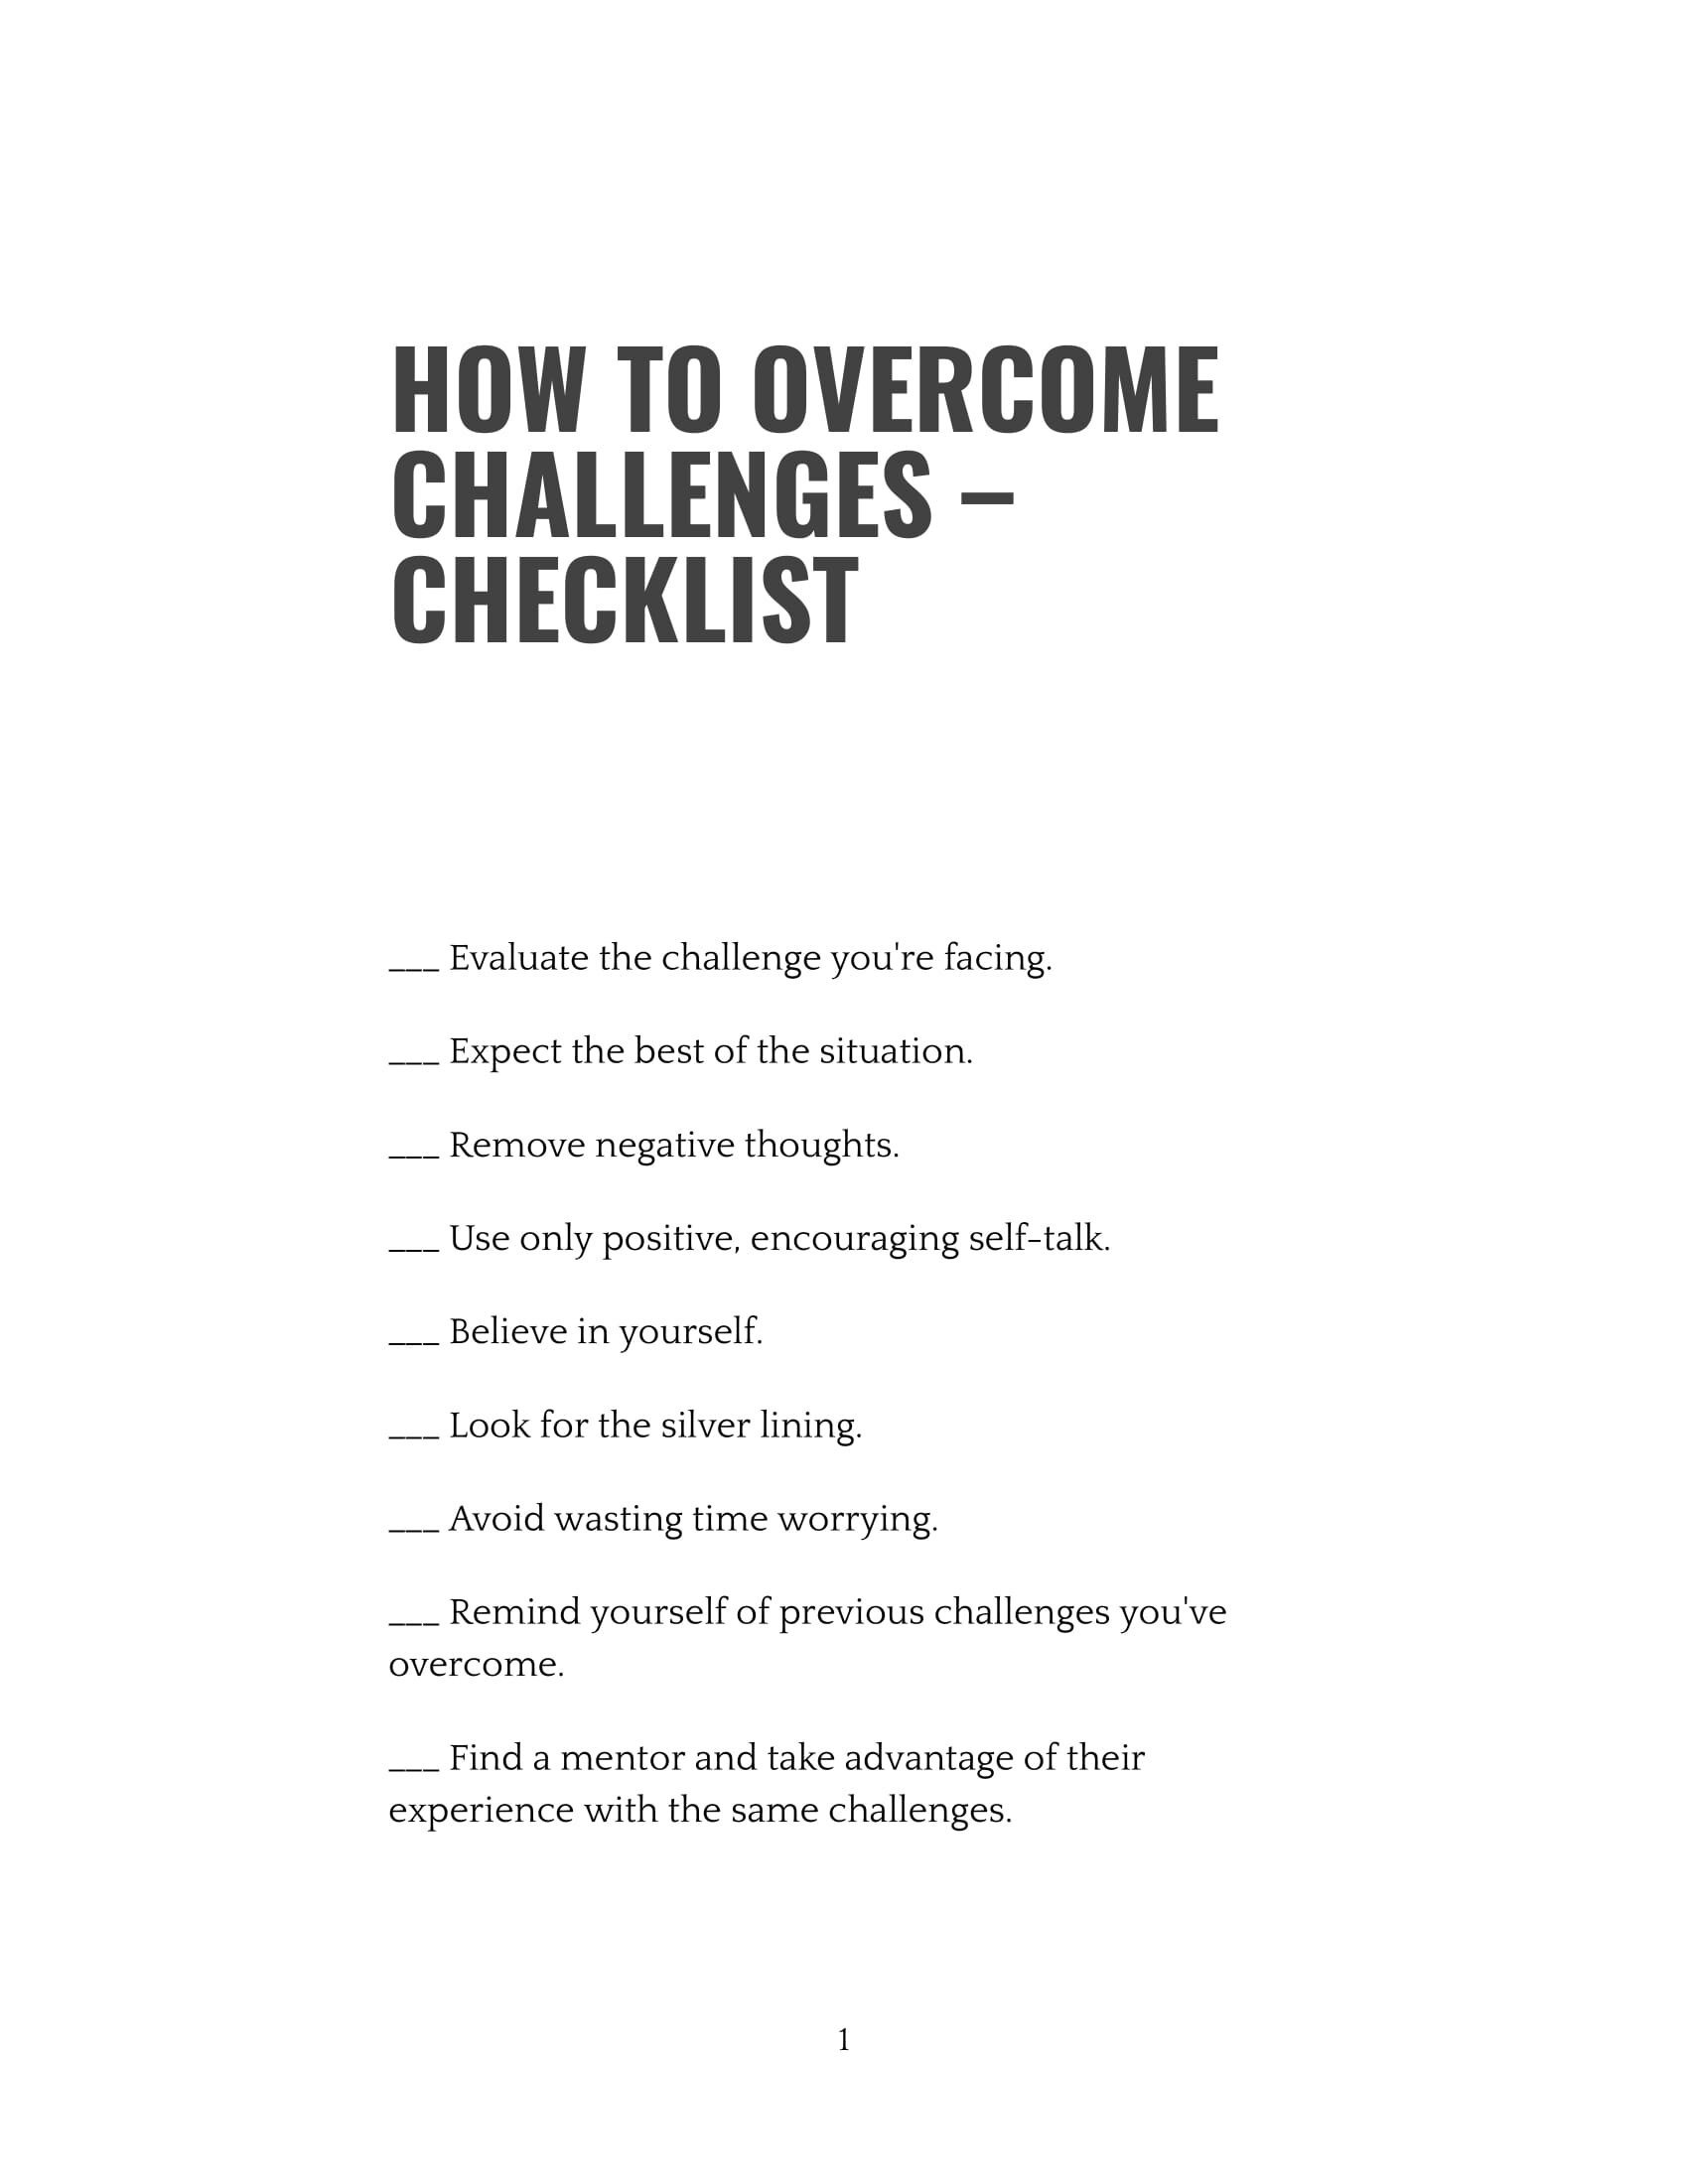 How To Overcome Challenges Checklist-1.jpg